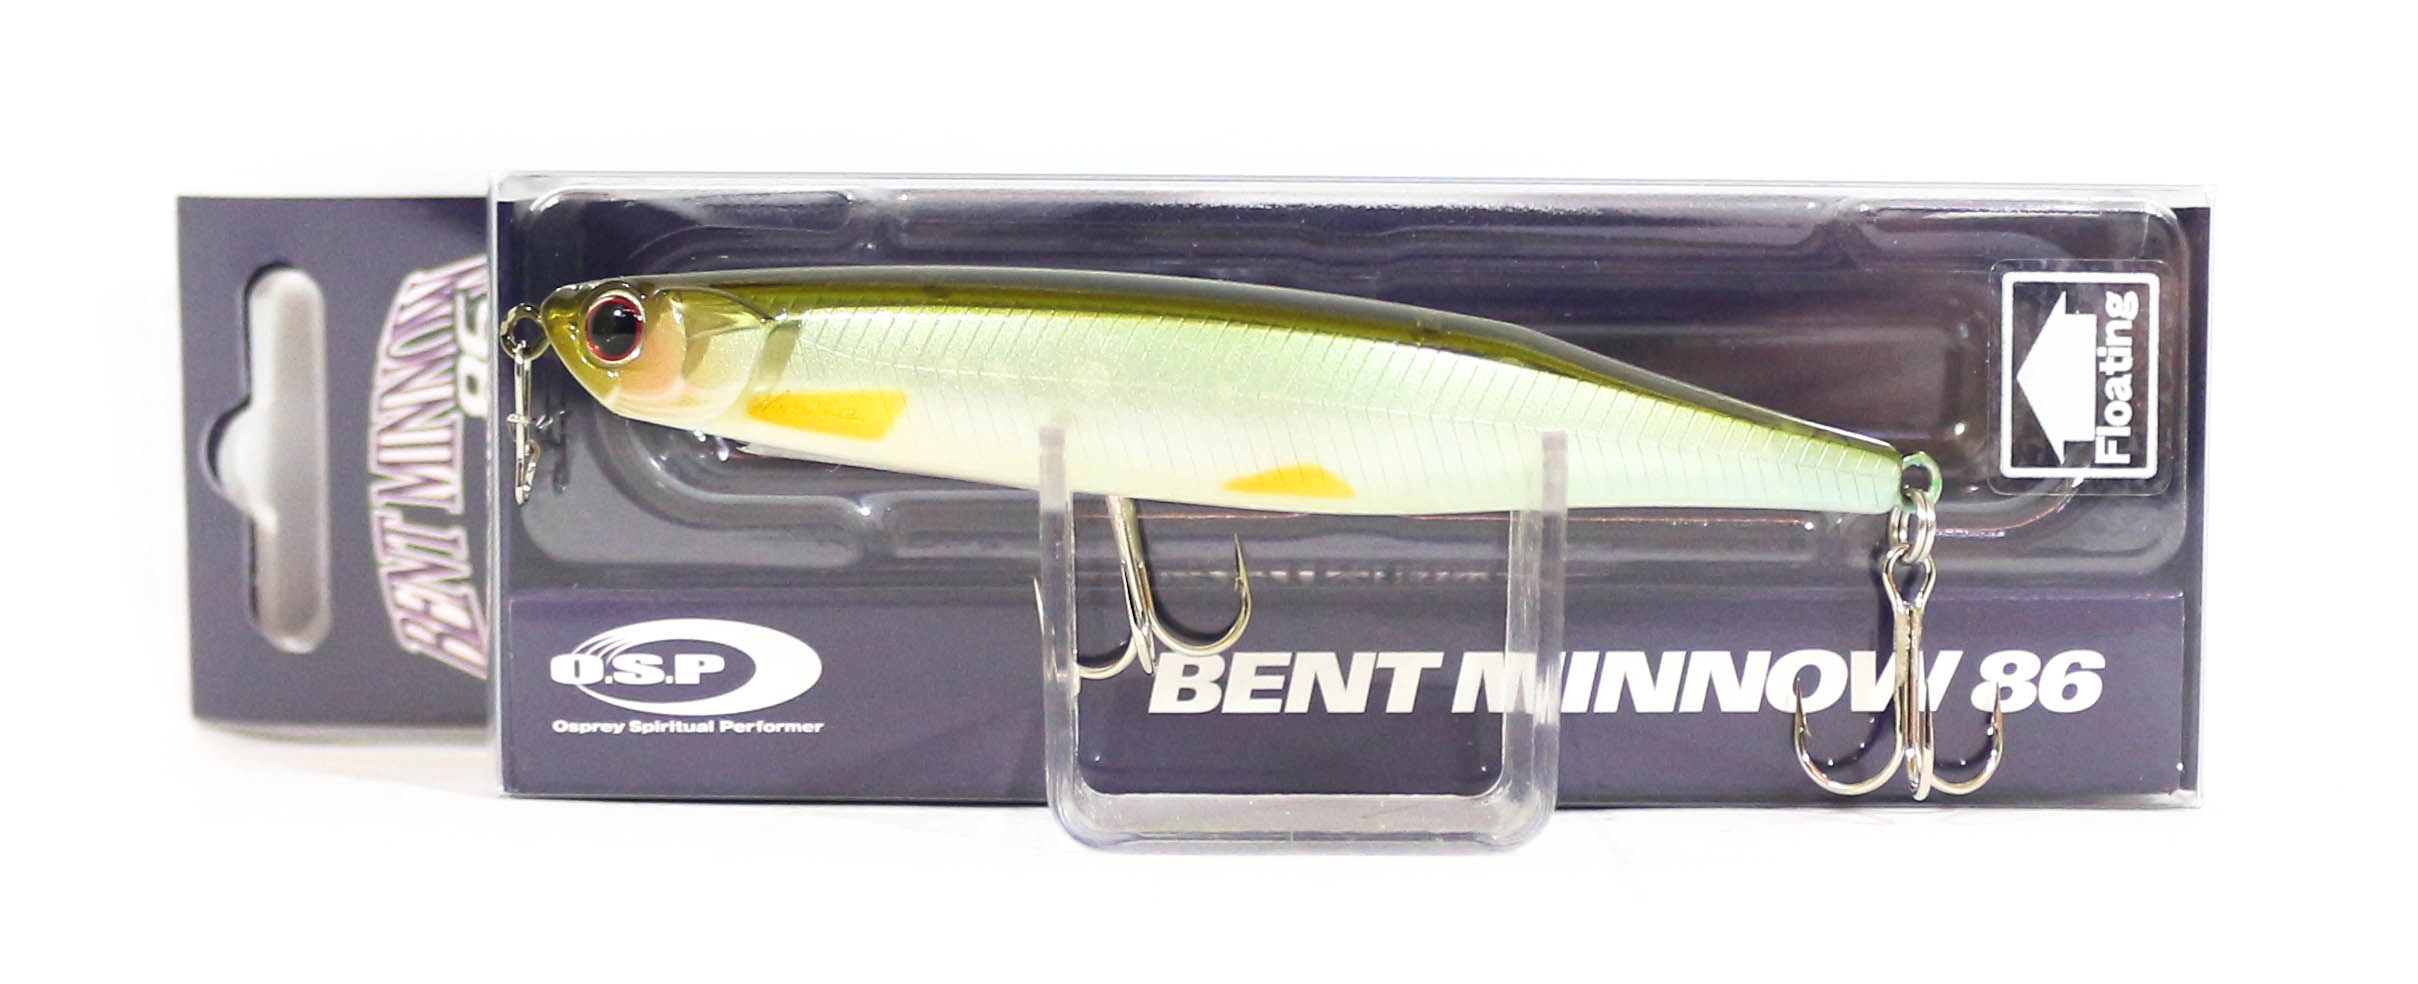 OSP Bent Minnow 86F Floating Minnow Lure GHF-83 (3884)